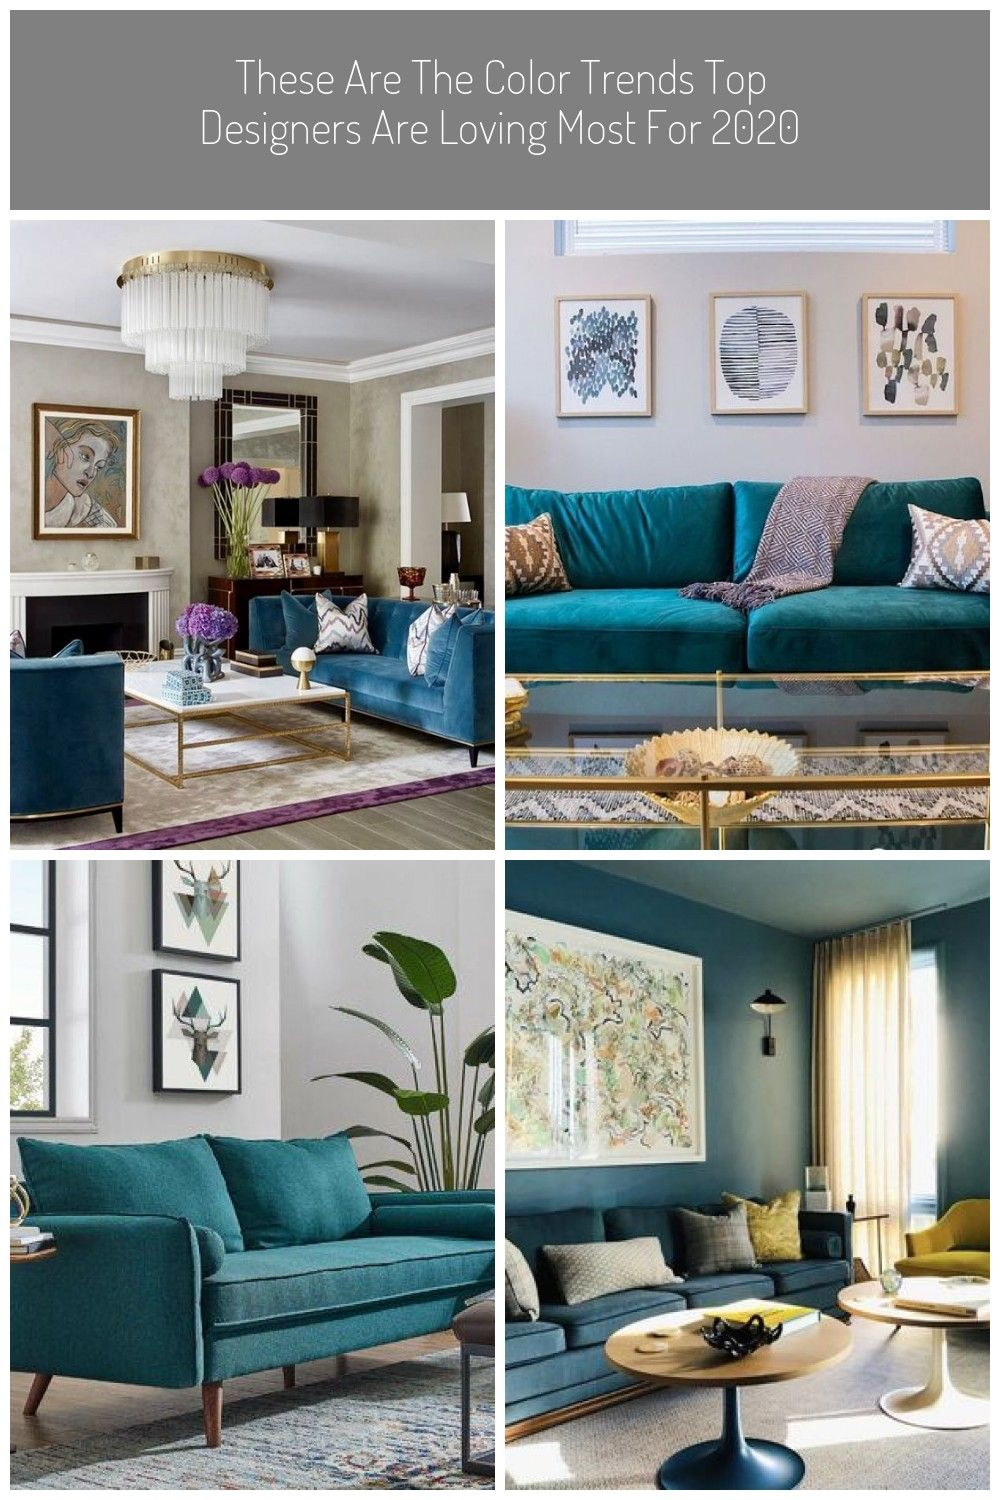 Teal Art Deco Living Room Decor With Teal Velvet Sofa Teal Decor Teal Sofa Beautiful Art Deco Teal Li In 2020 Art Deco Living Room Living Room Decor Teal Living Rooms